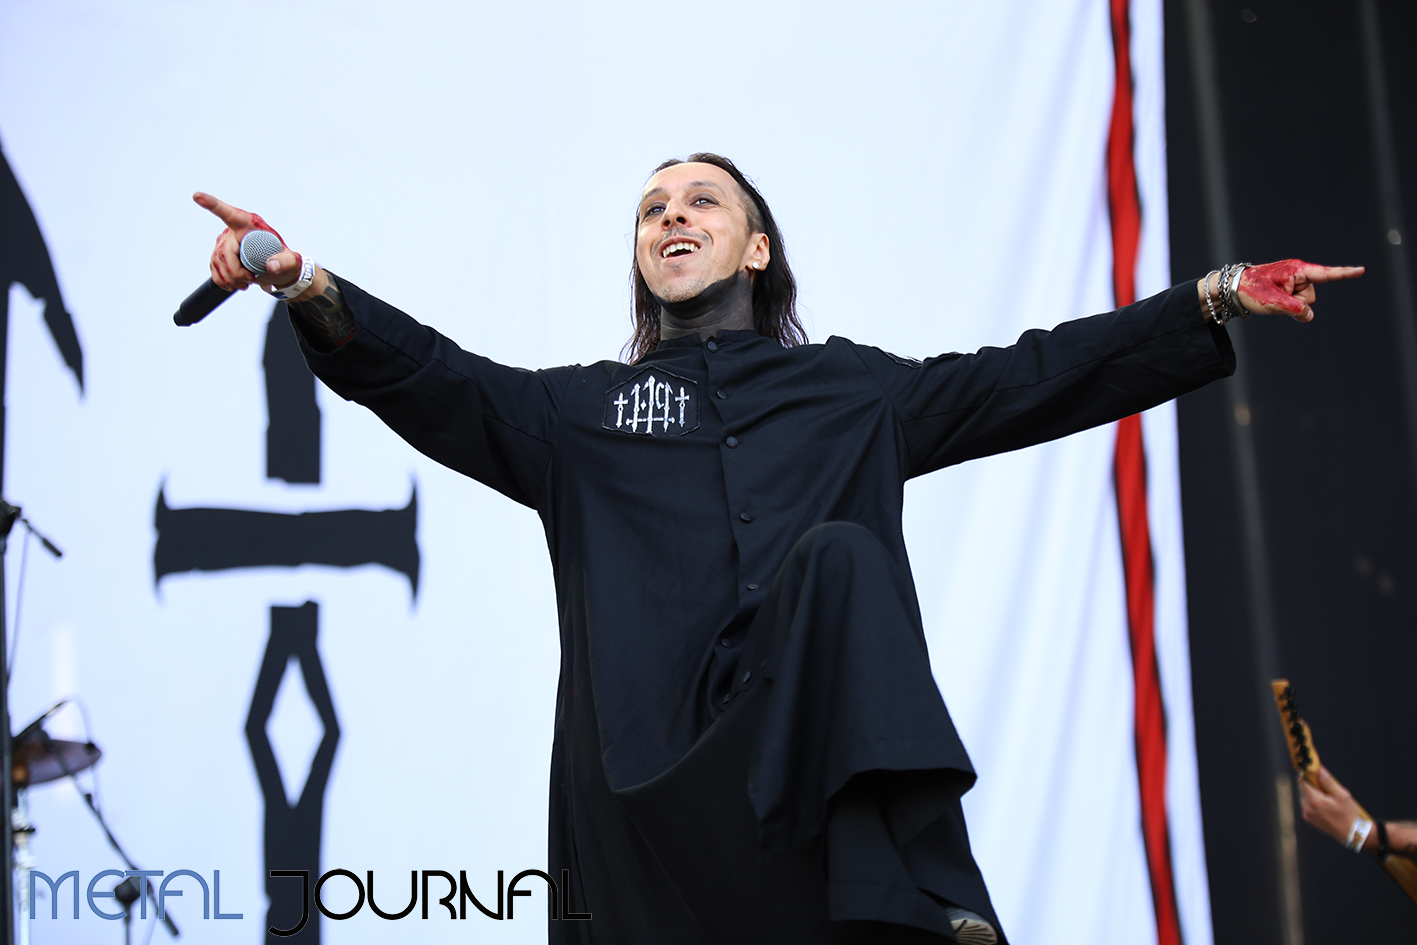 lacuna coil - leyendas del rock 2019 metal journal pic 3